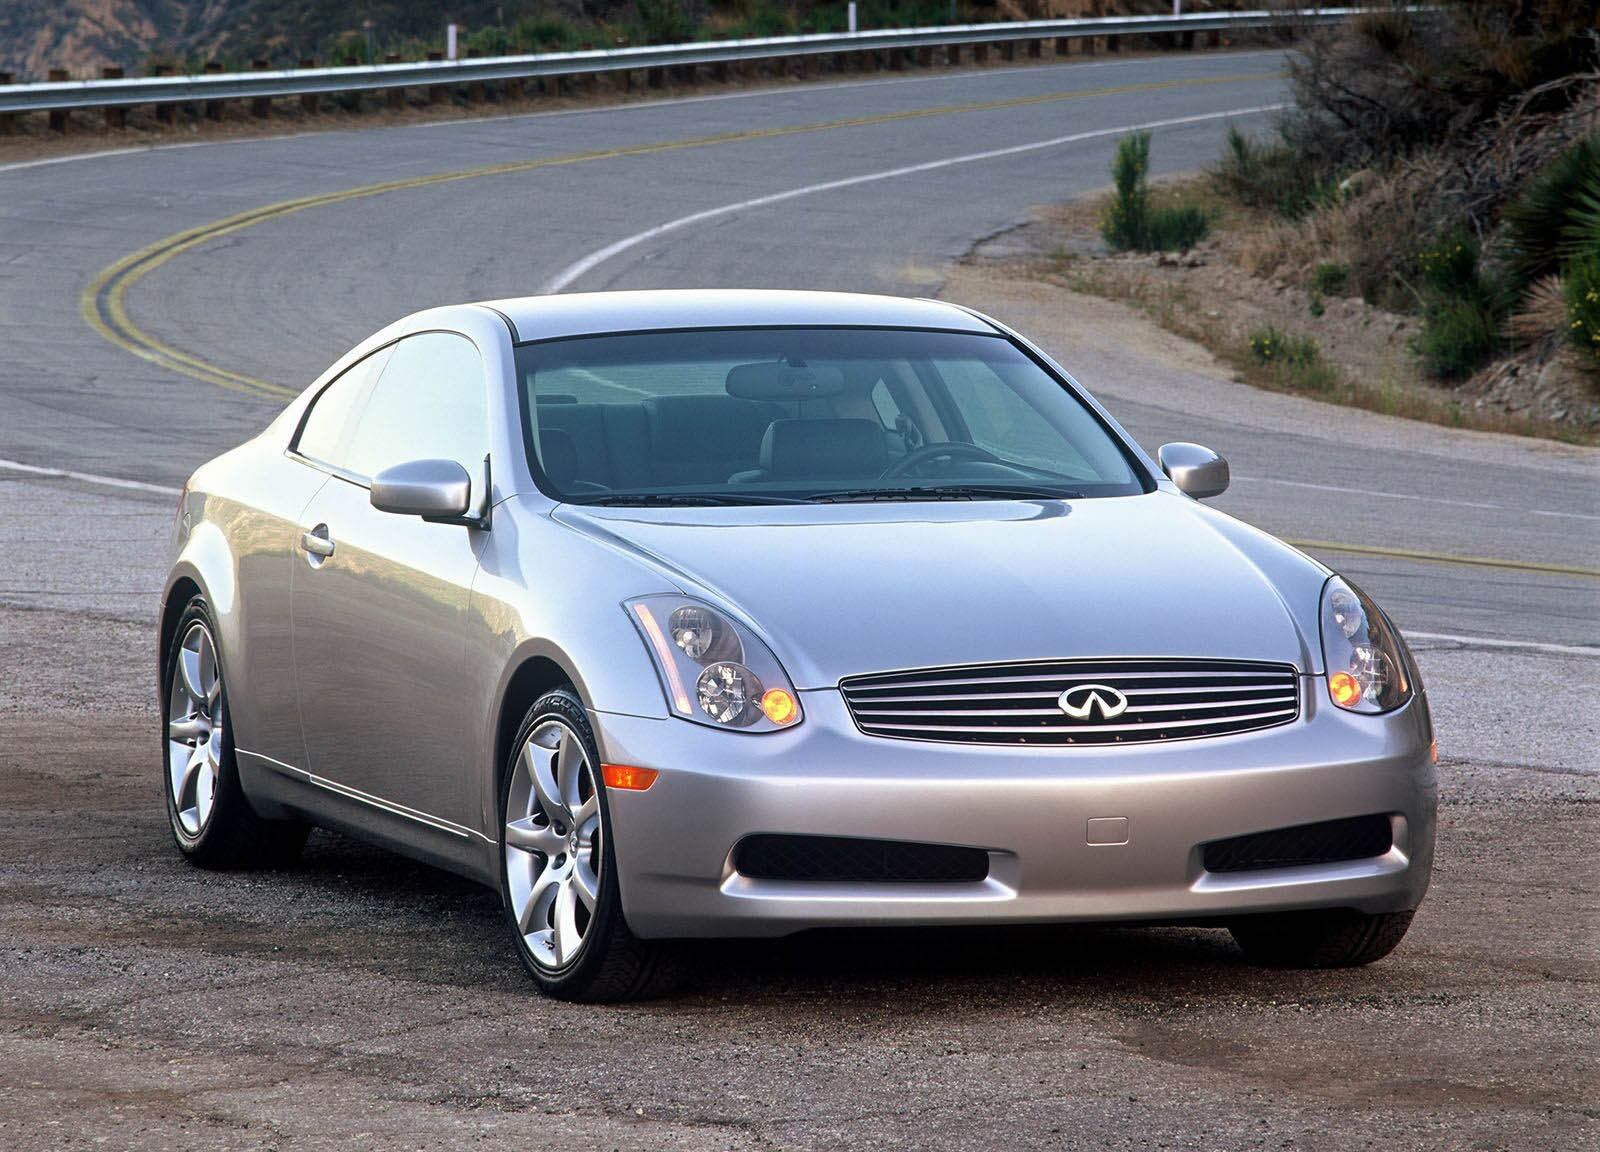 2003 Infiniti G35 Coupe Top Speed